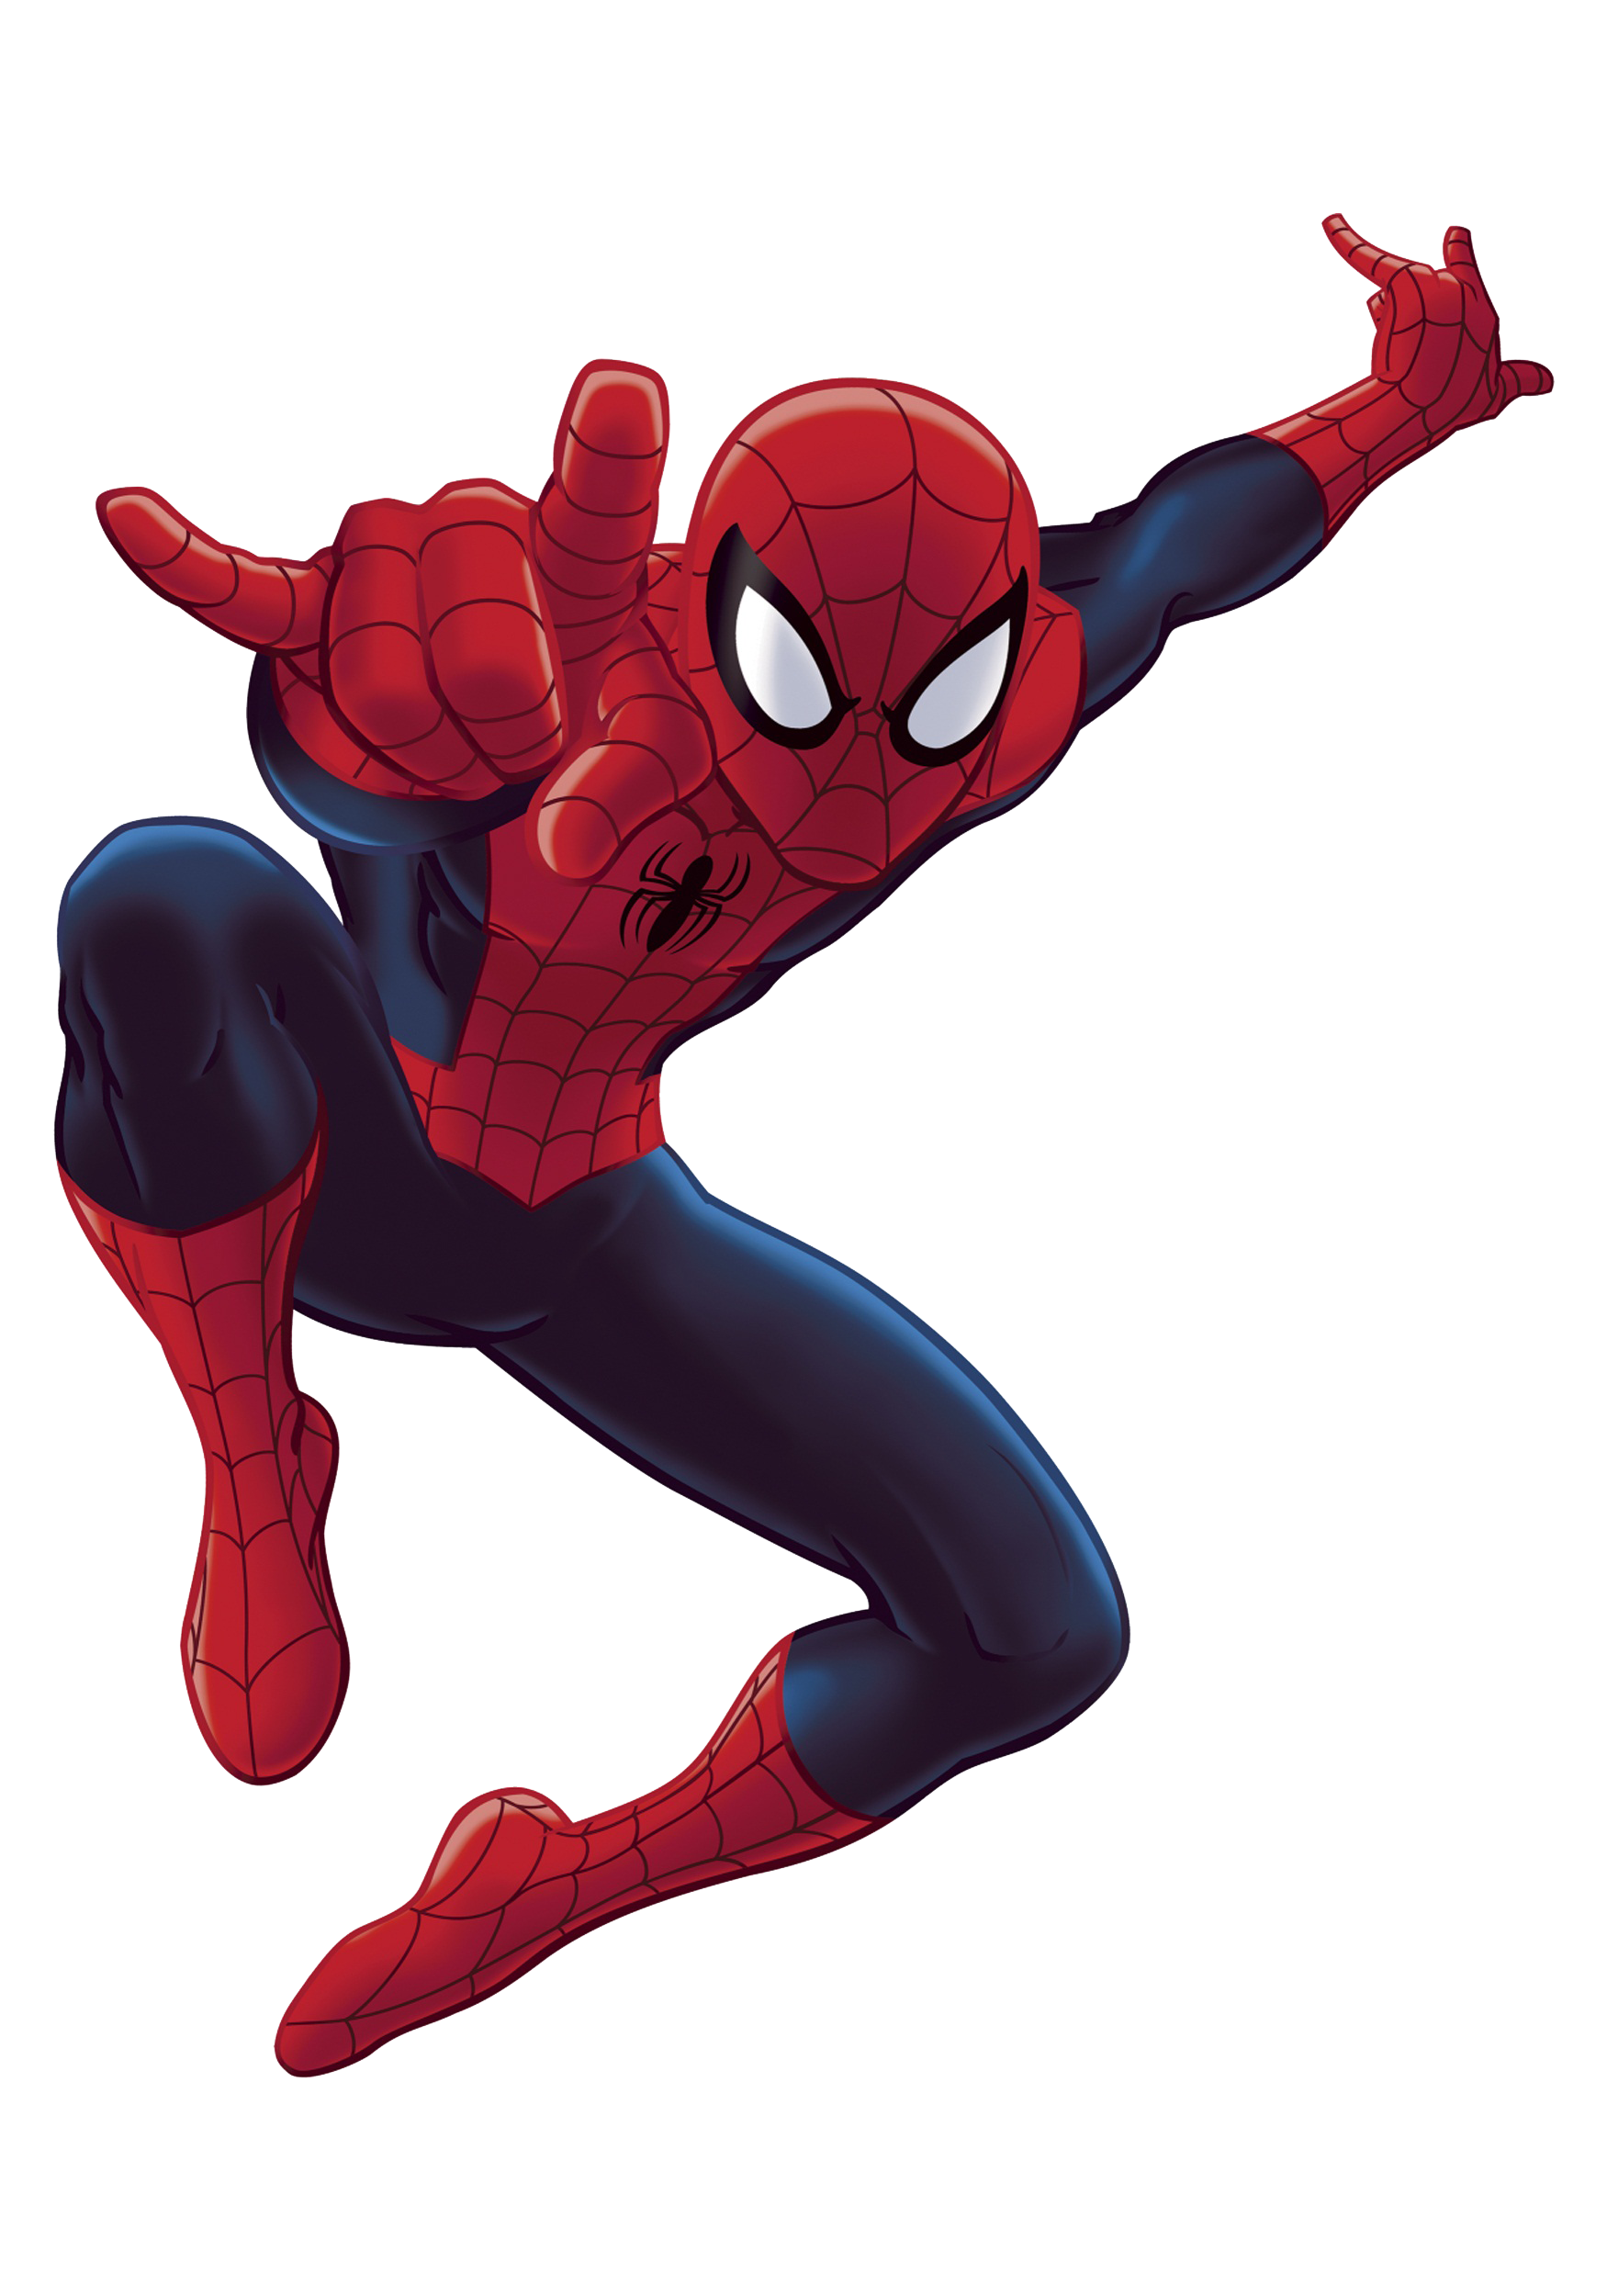 Free spiderman clipart vector royalty free Free Spiderman Png Transparent Background vector royalty free